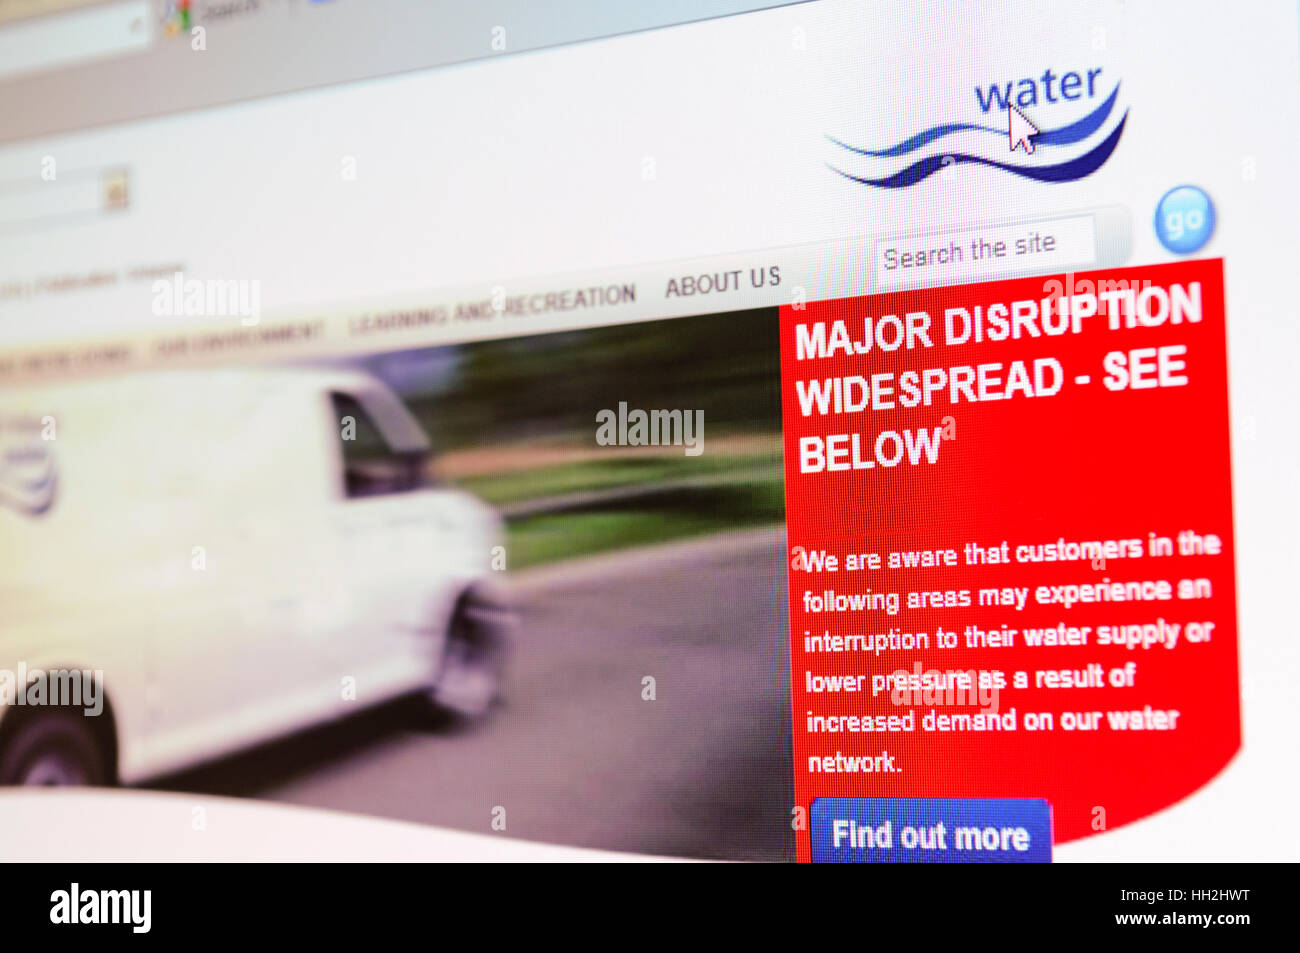 Belfast, Northern Ireland. 31 Dec 2010 - Water company's website warns of continued major disruption to water - Stock Image